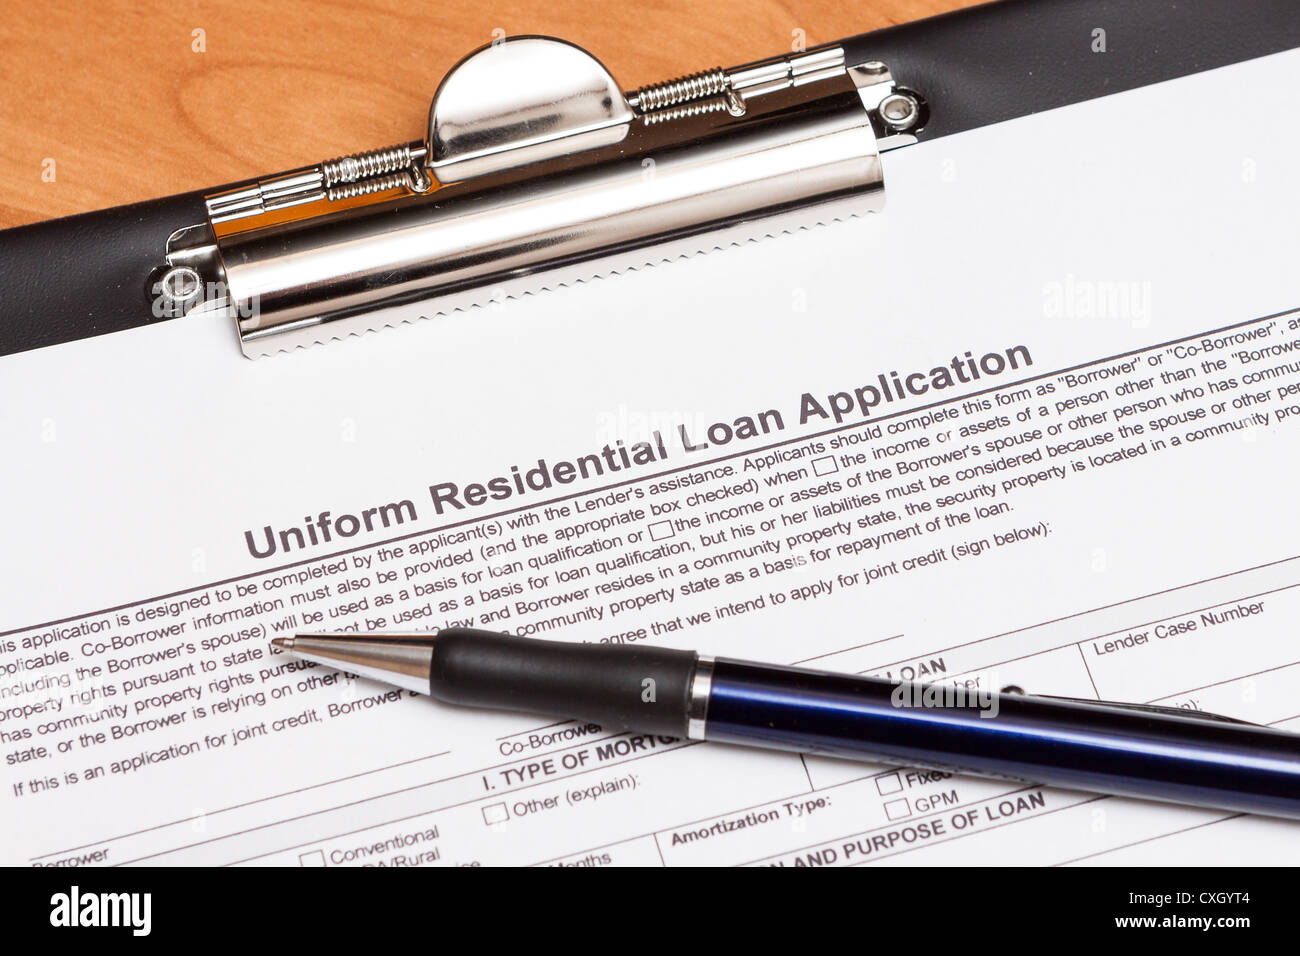 Mortgage loan application form on the table - Stock Image